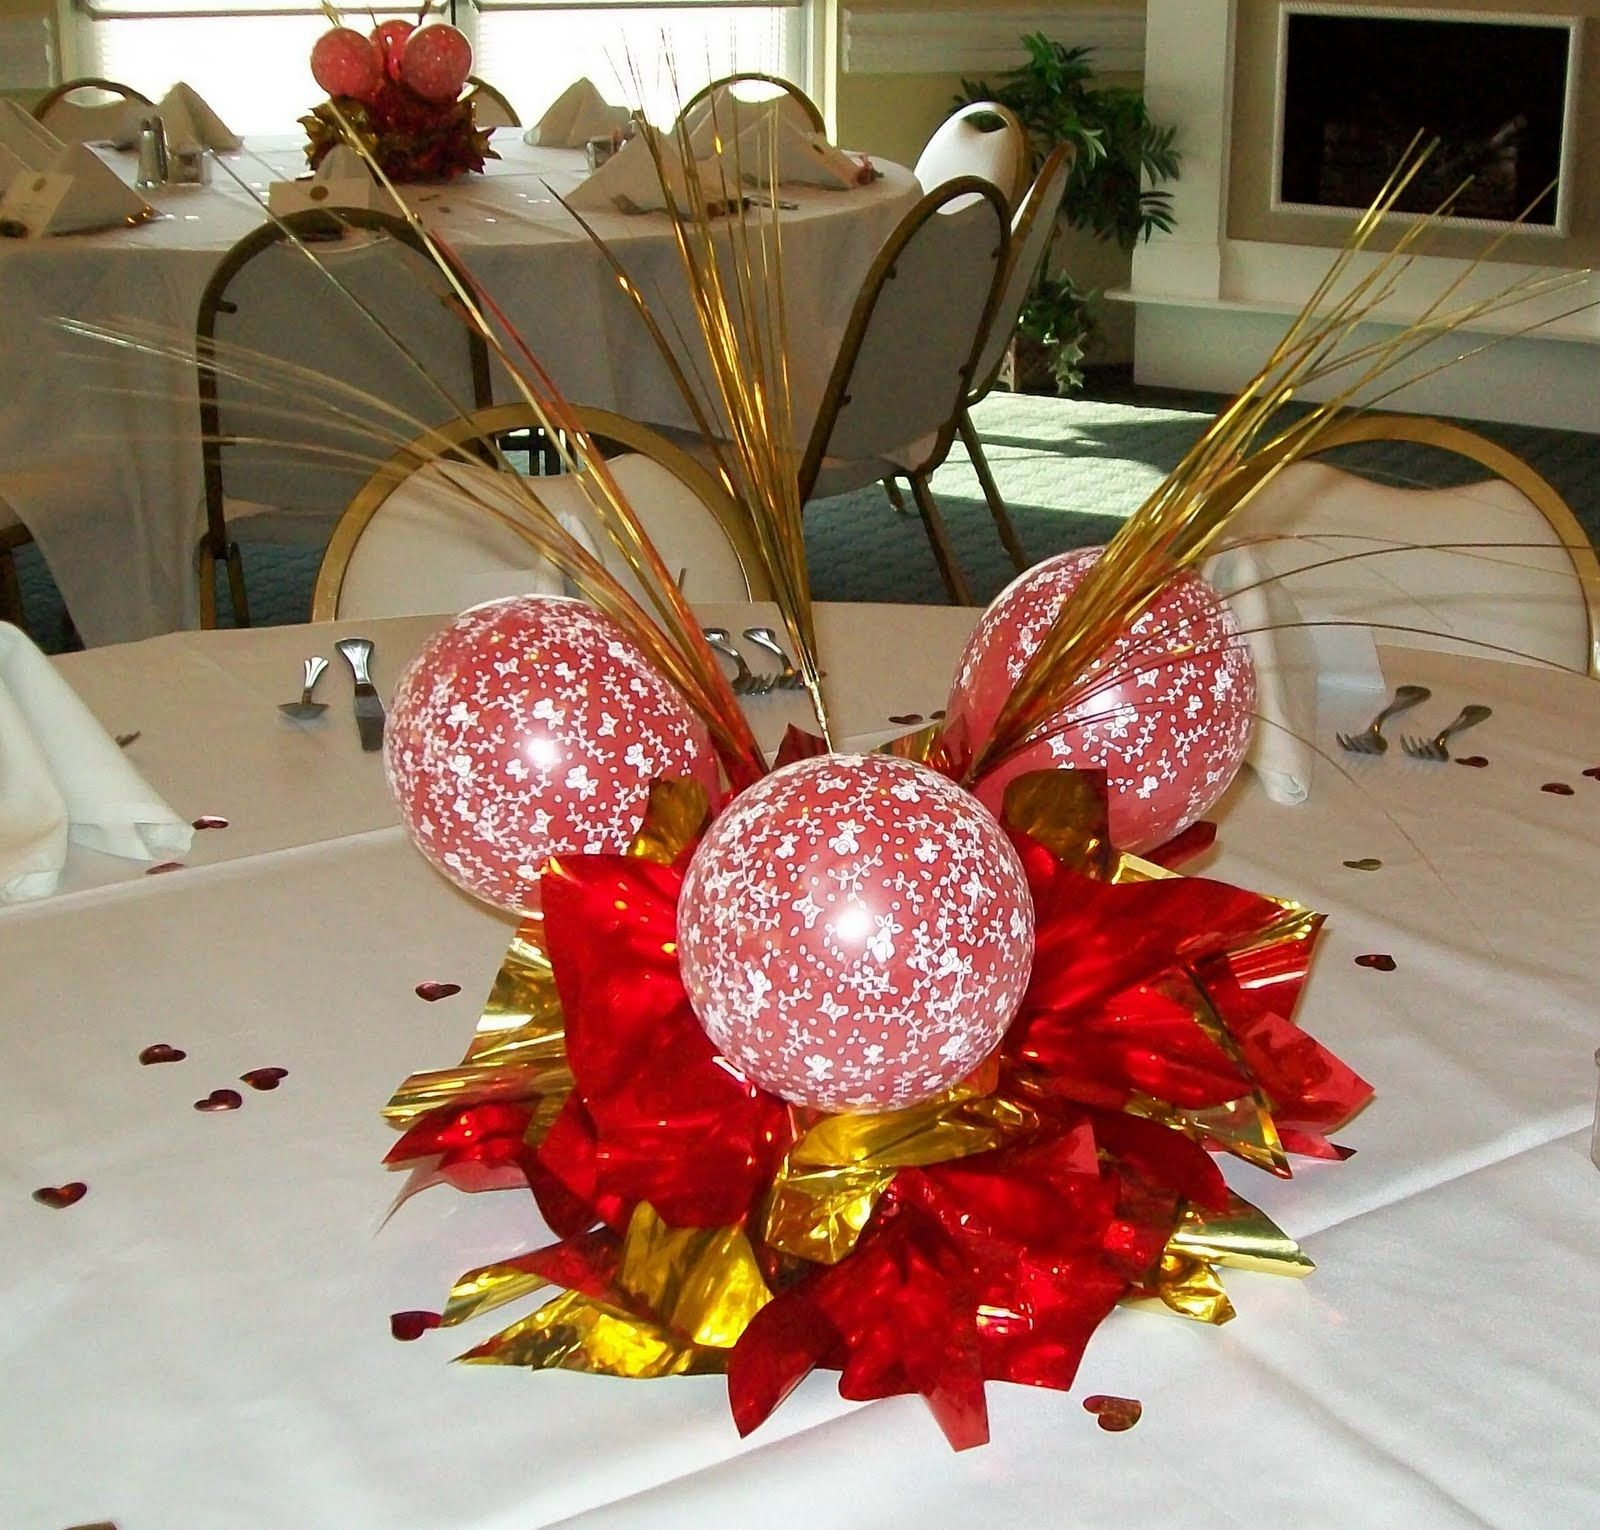 Wedding decorations red  Carmenweddingredandgoldcenterpieceg  Inspirations